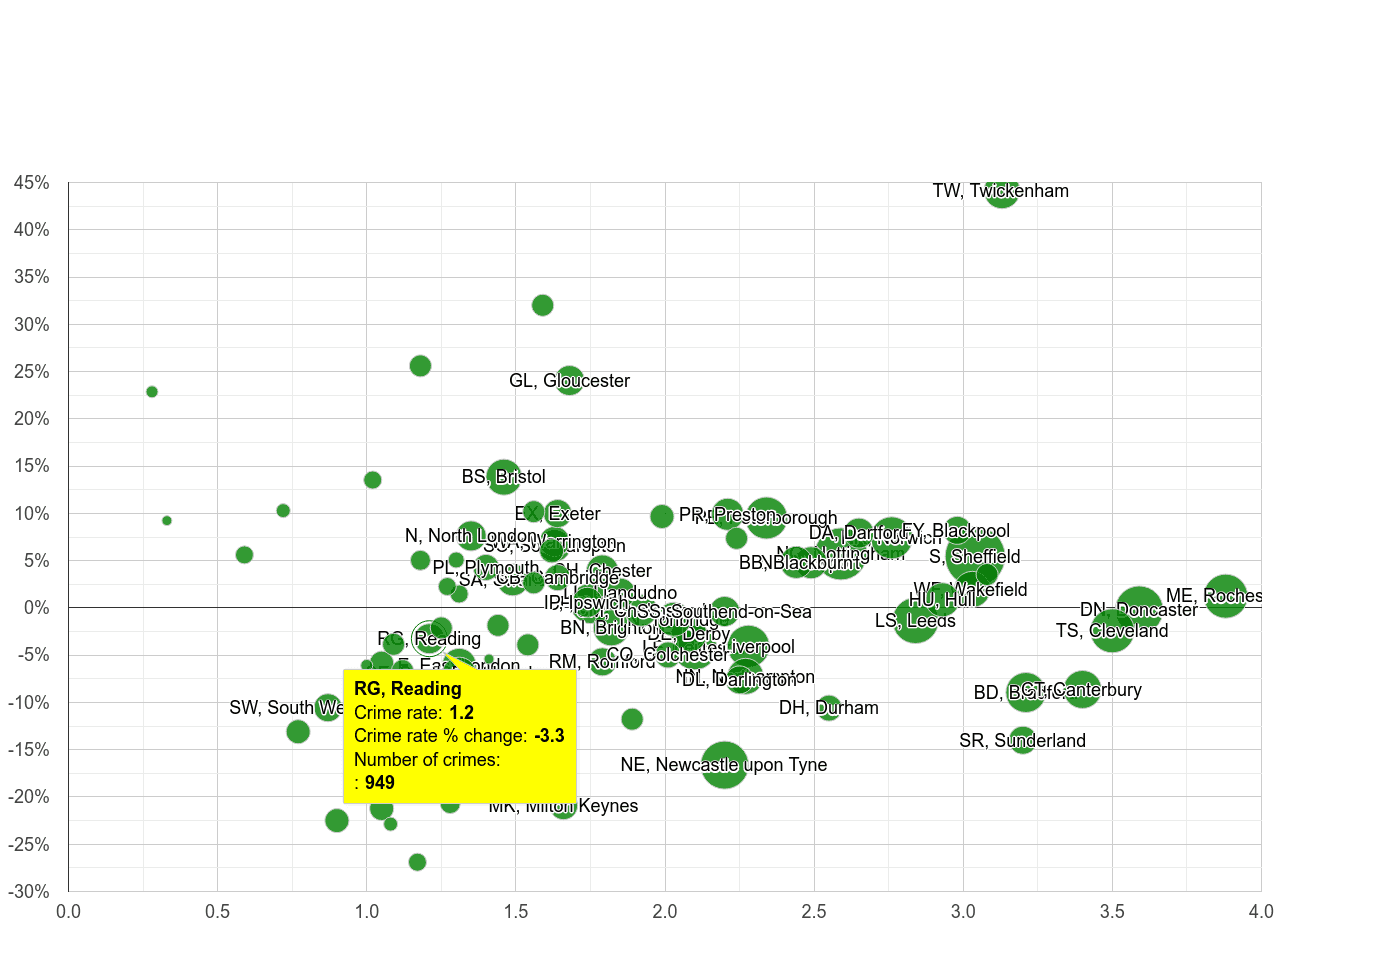 Reading other crime rate compared to other areas